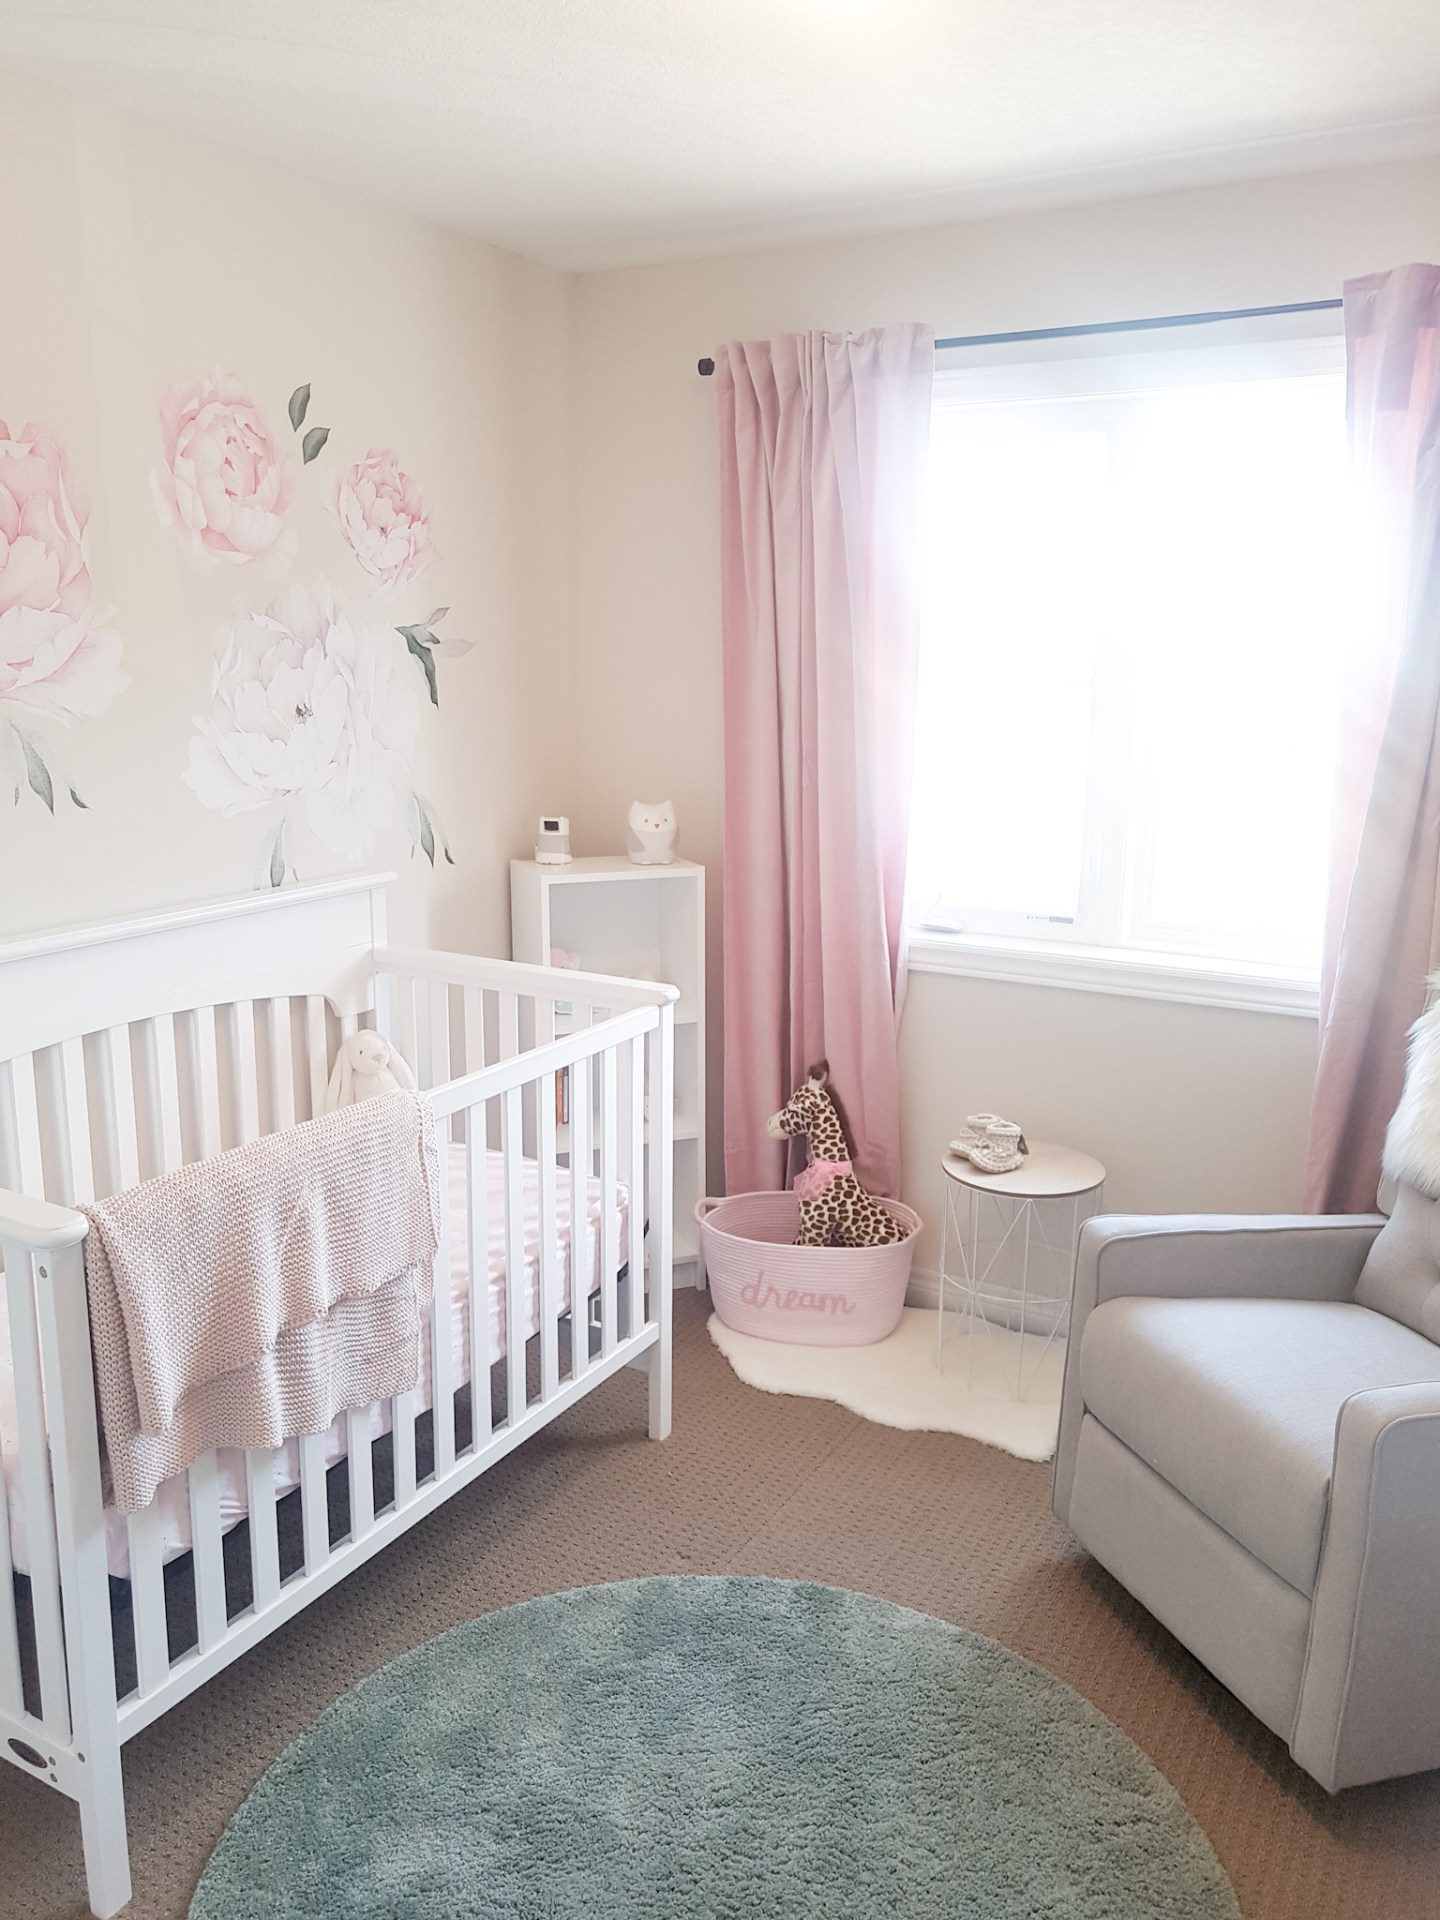 Baby Girl Nursery Room Tour + Nursery Essentials - CANDICE ...